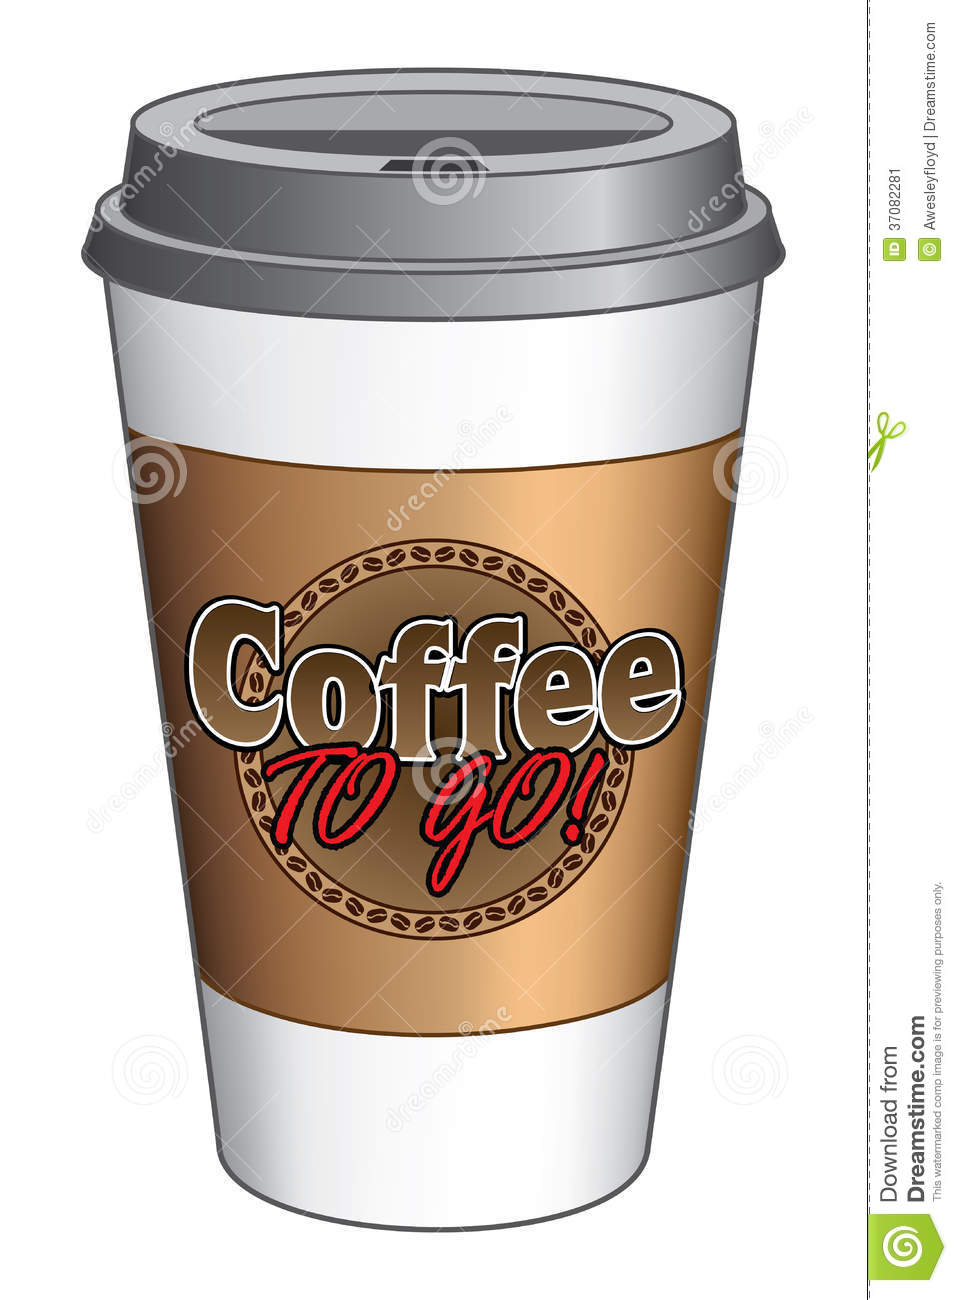 coffee to go cup stock image image 37082281. Black Bedroom Furniture Sets. Home Design Ideas